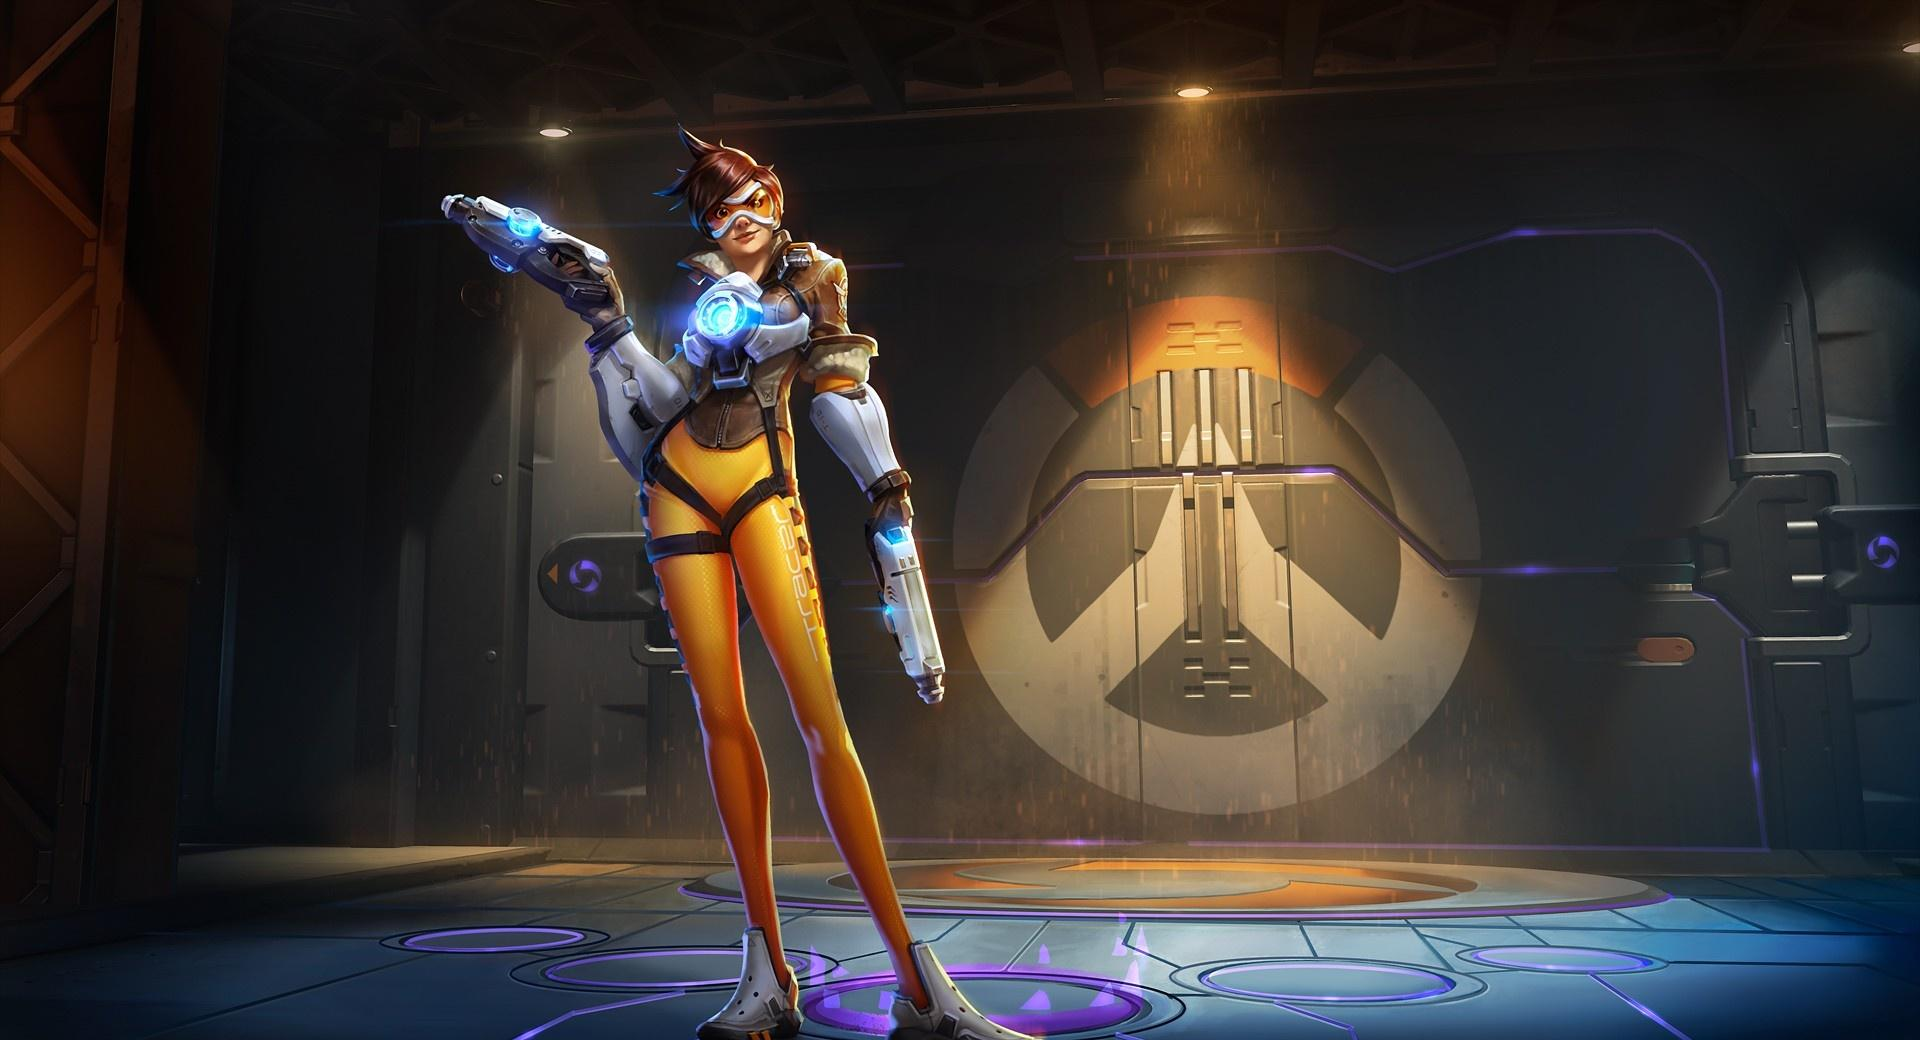 Tracer Overwatch wallpapers HD quality